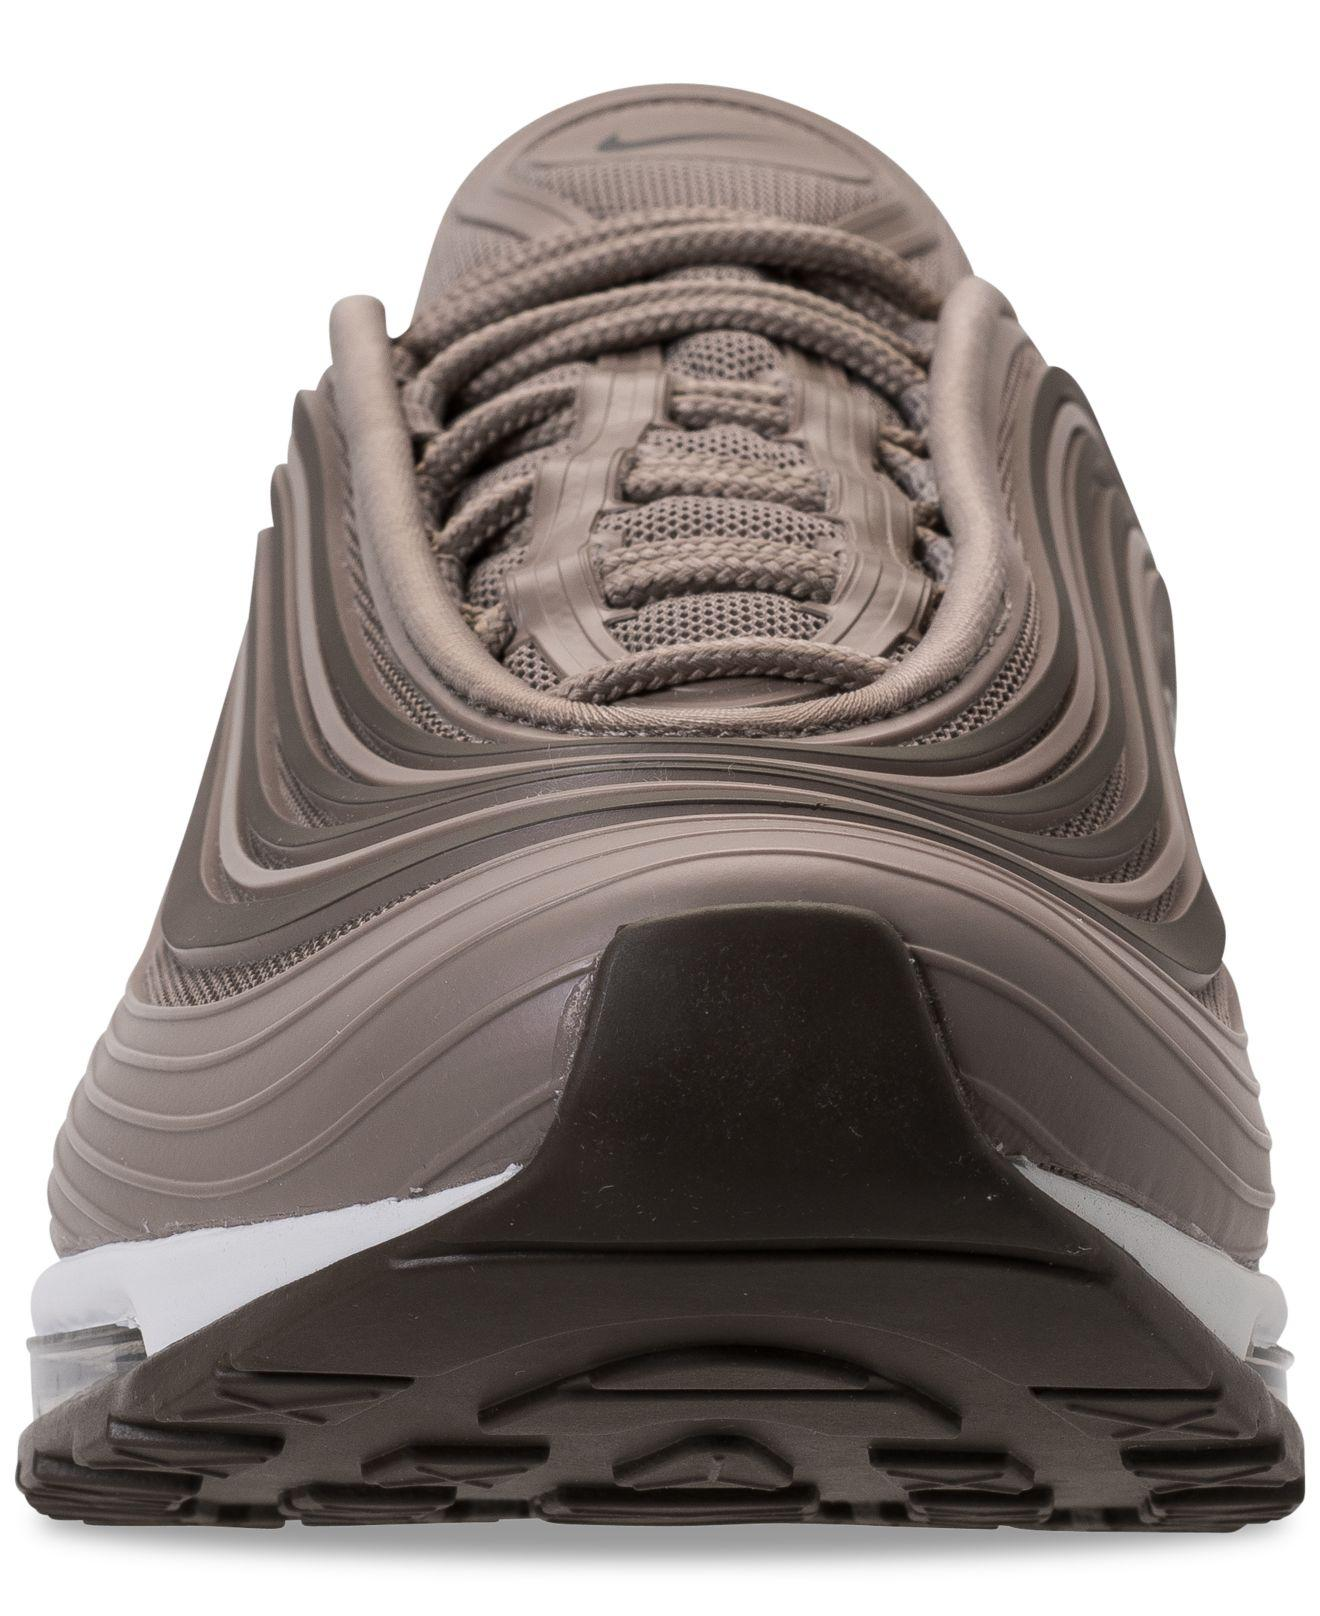 44775c5089 Nike Air Max 97 Ultra 2017 Premium Casual Sneakers From Finish Line ...